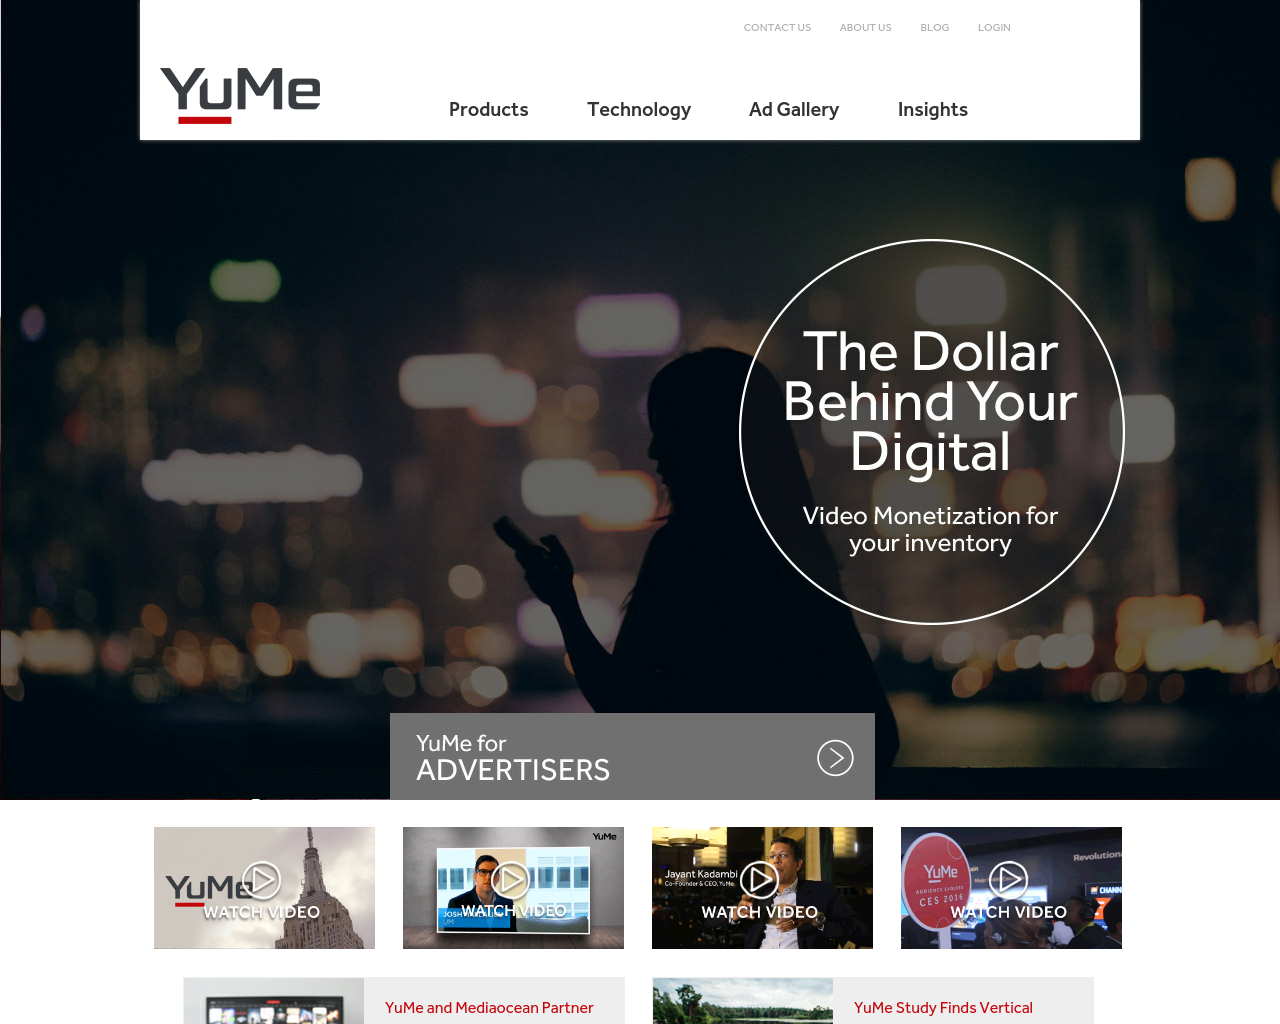 YuMe-Advertising-Reviews-Pricing